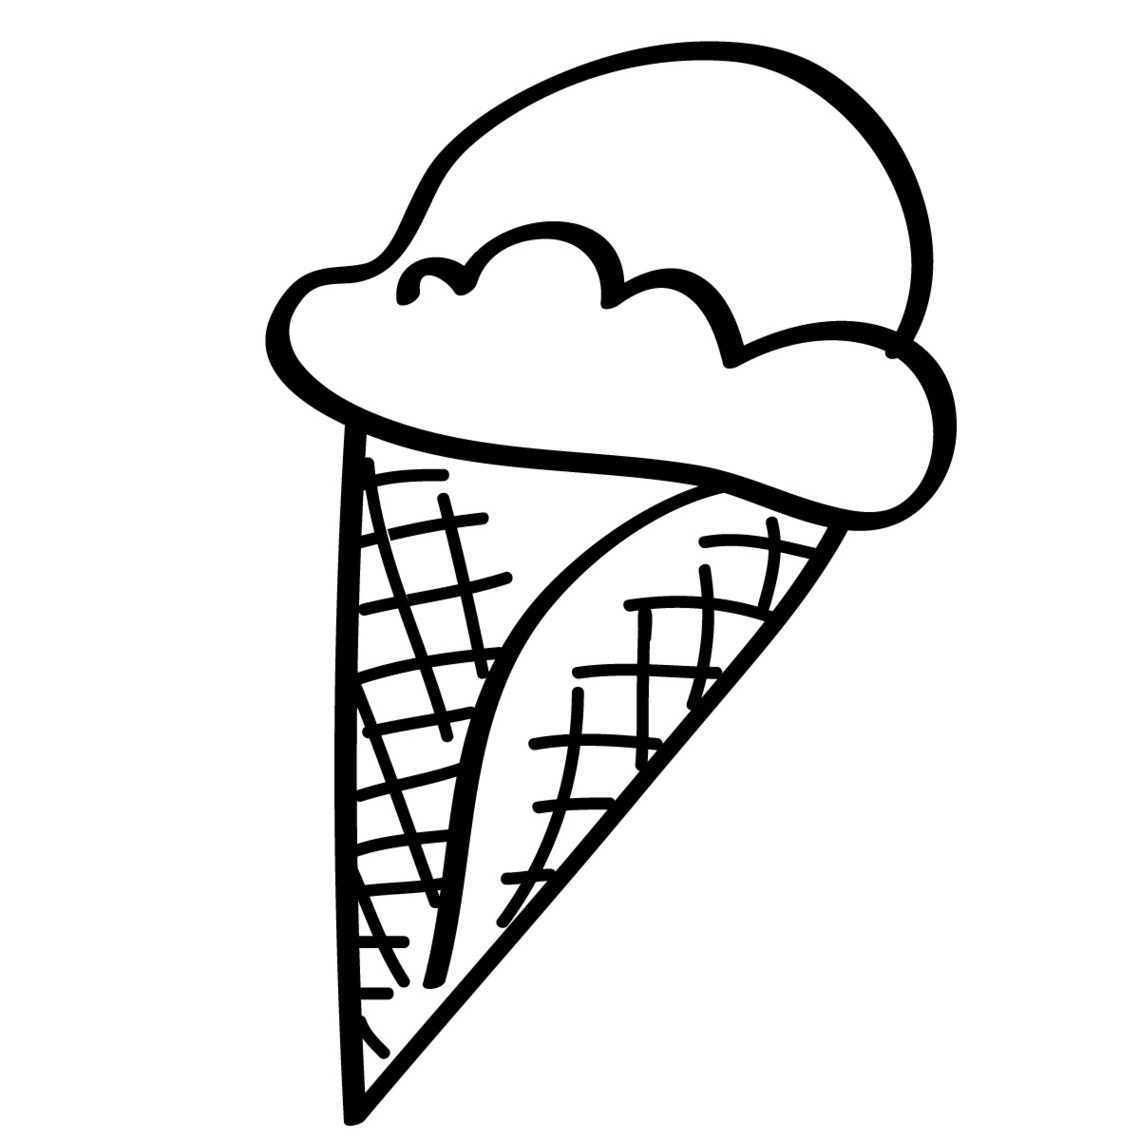 Coloring pictures of ice cream cones - Coloring Pages Of Ice Cream